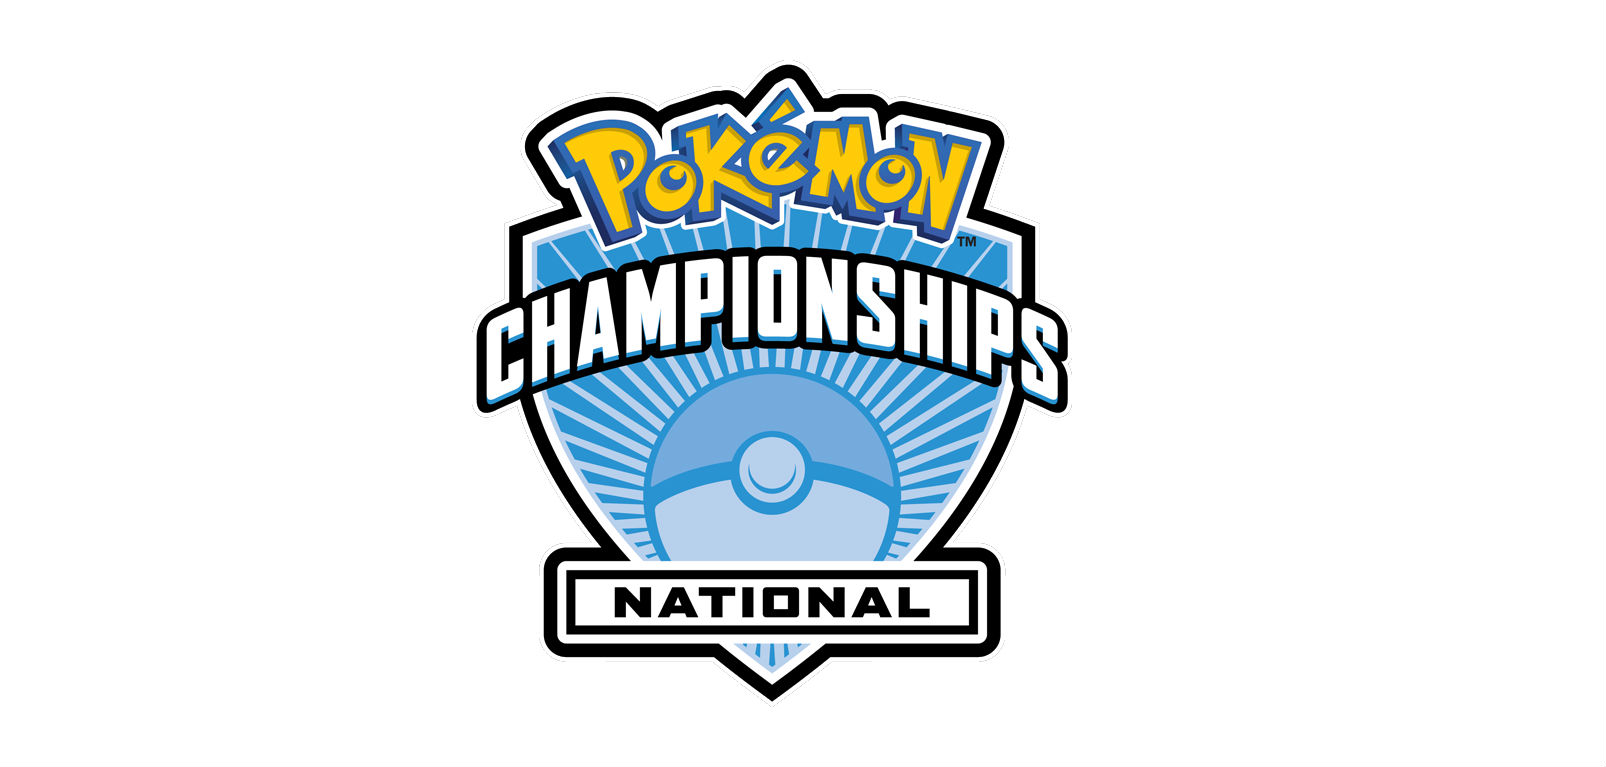 Pokemon US National Championships 2014 will be streamed via Twitch